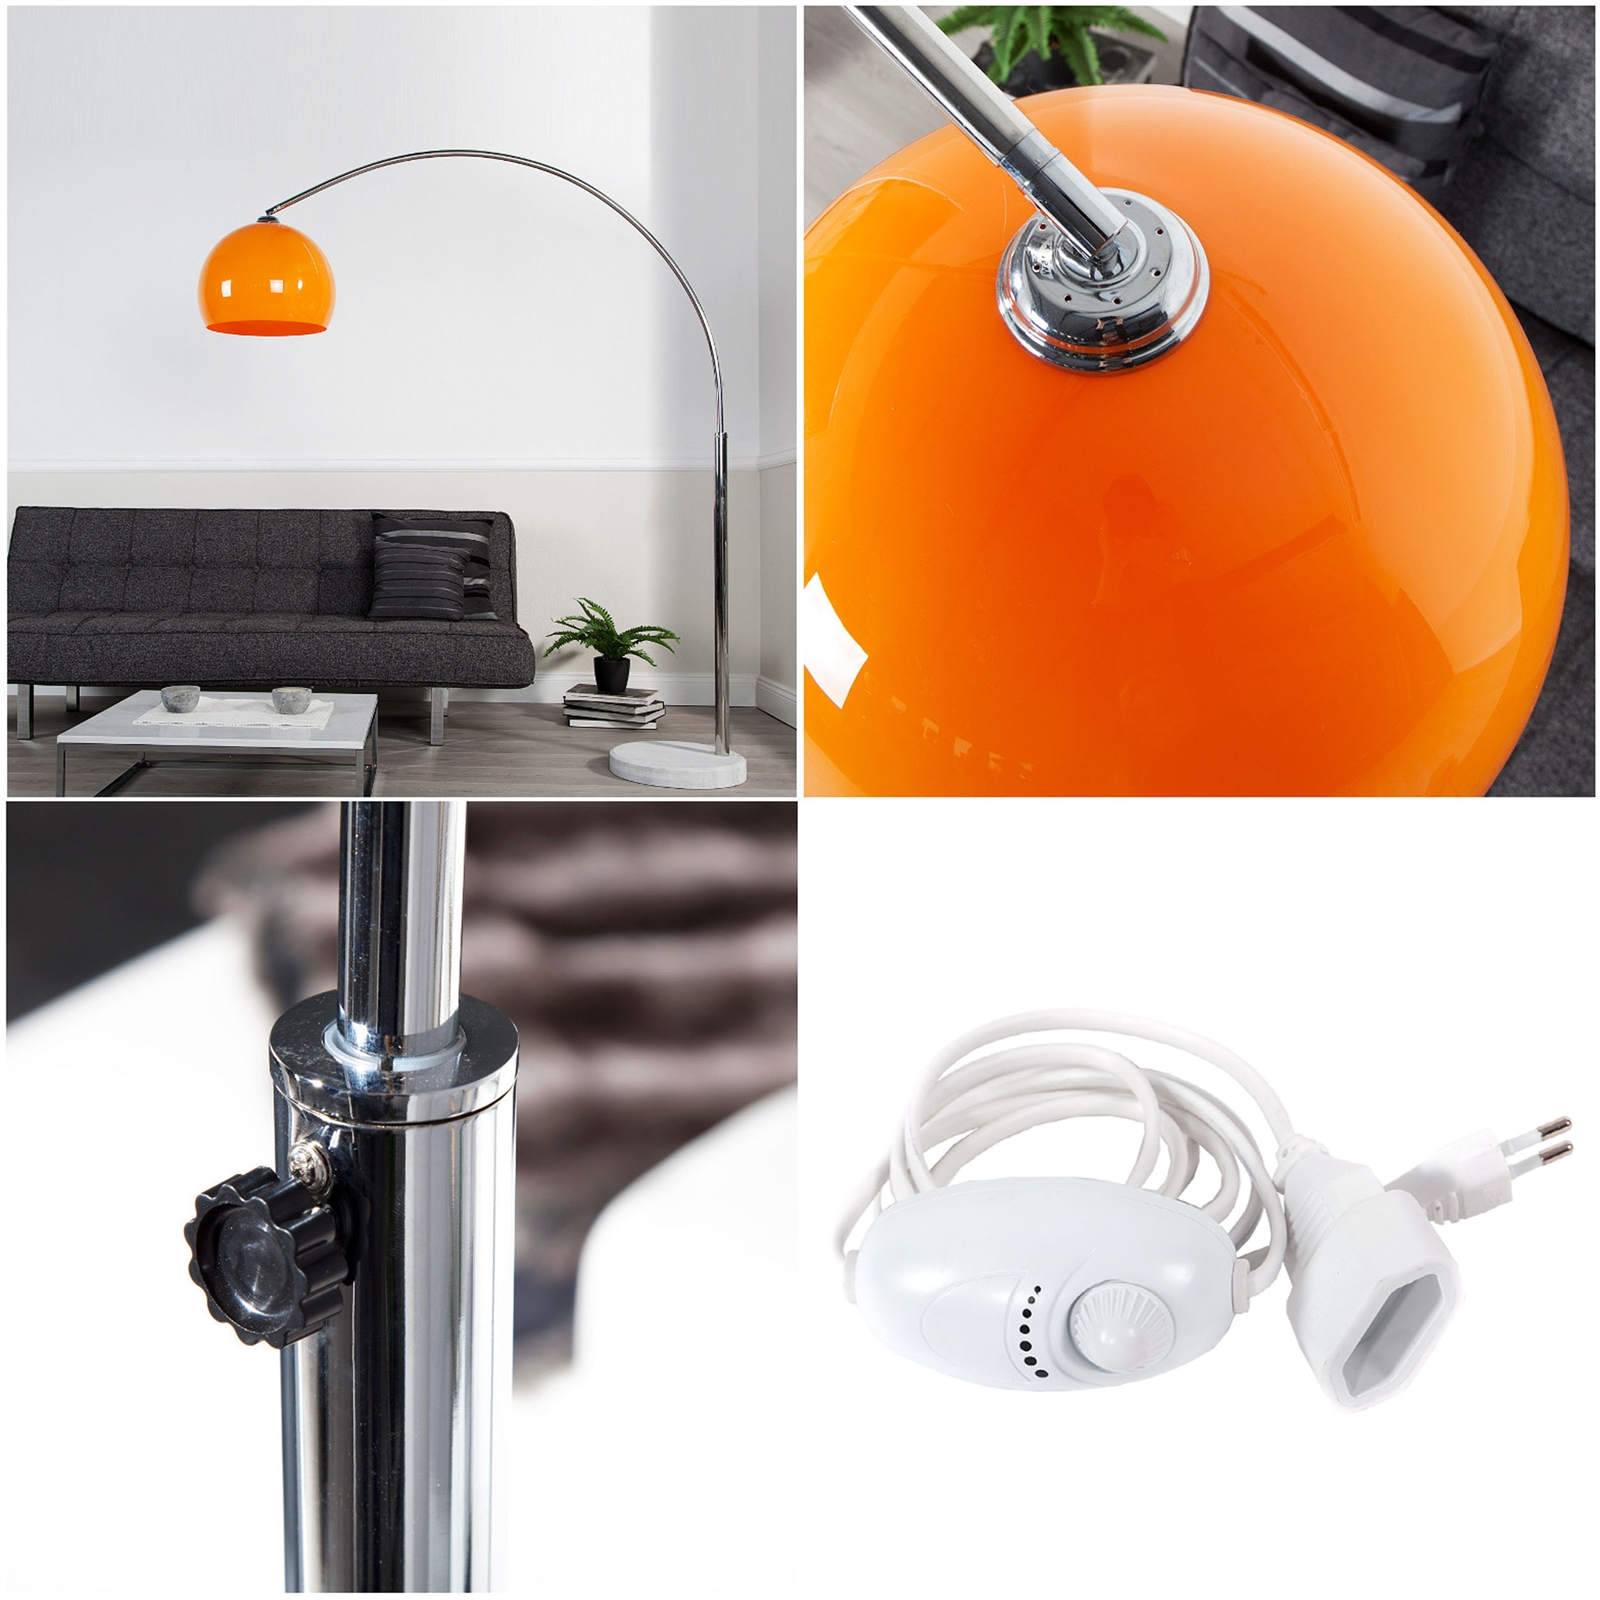 Big Bow Retro Design Lampe Dimmbar Orange Lounge Stehlampe